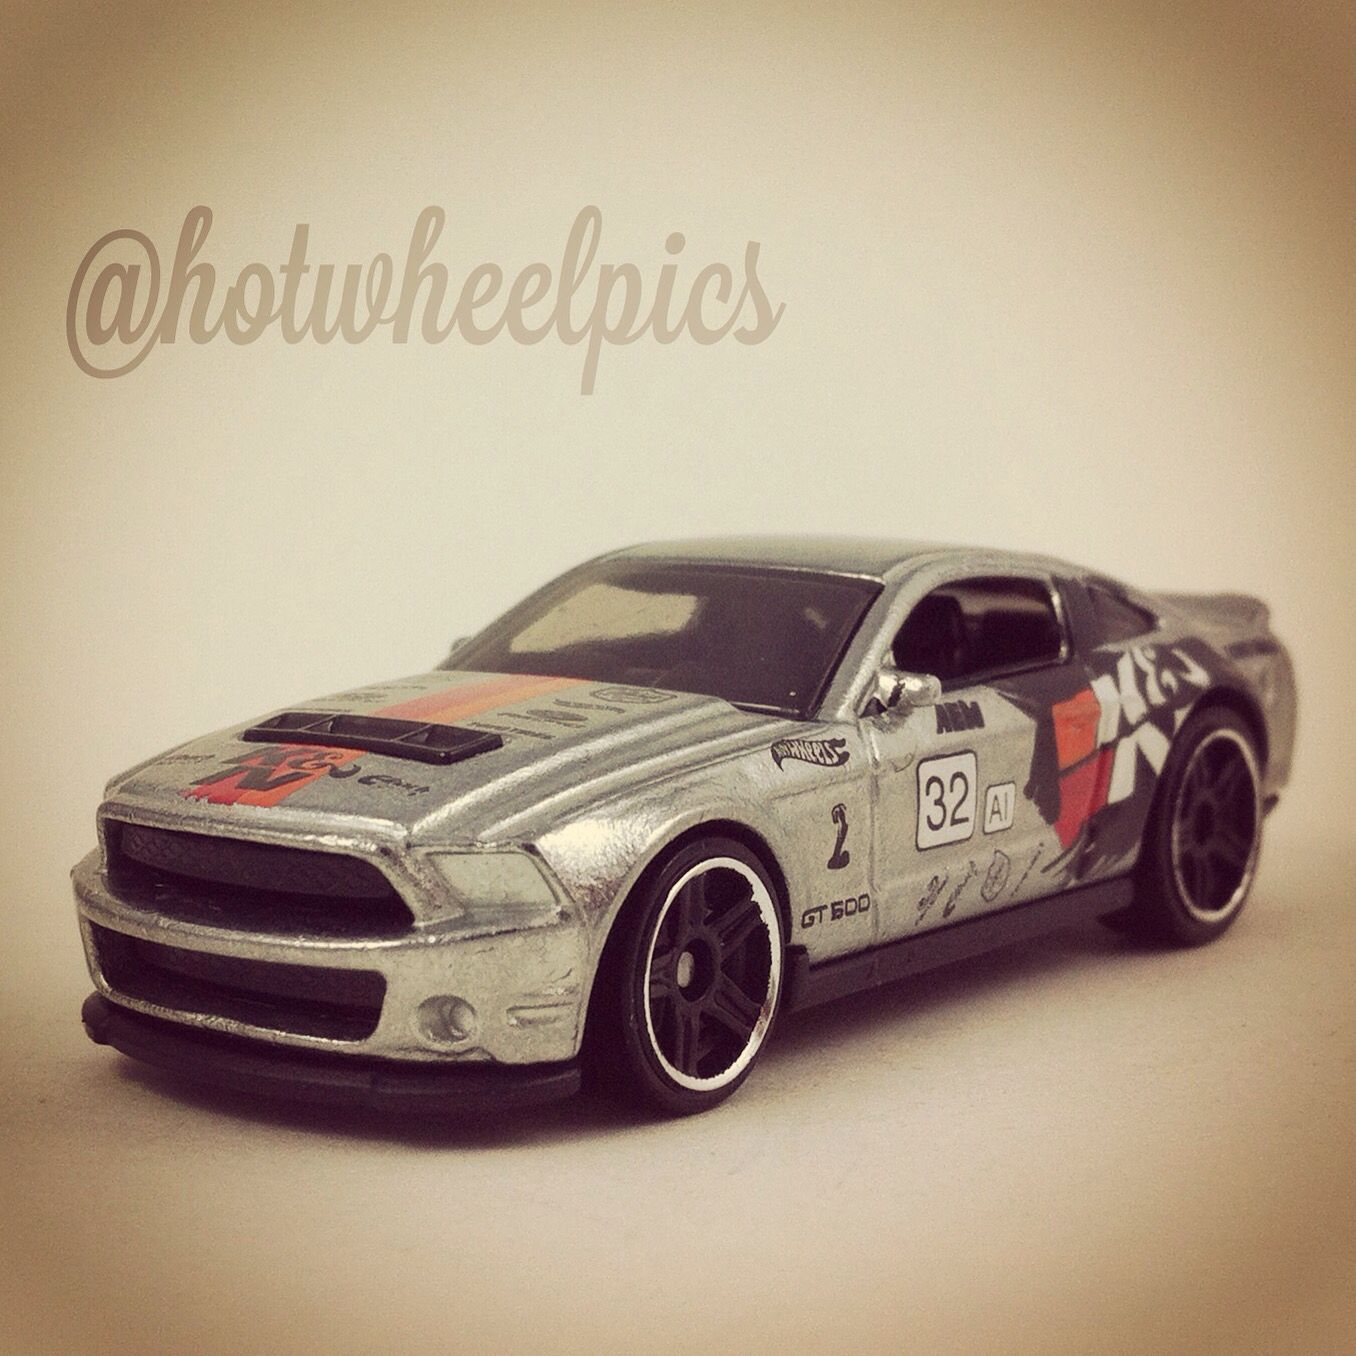 10 Ford Shelby Gt500 Zamac 003 2015 Hot Wheels Hw City Performance Hotwheels Die Cast Toys Mustang Ford Shelby Shelby Gt500 Hot Wheels